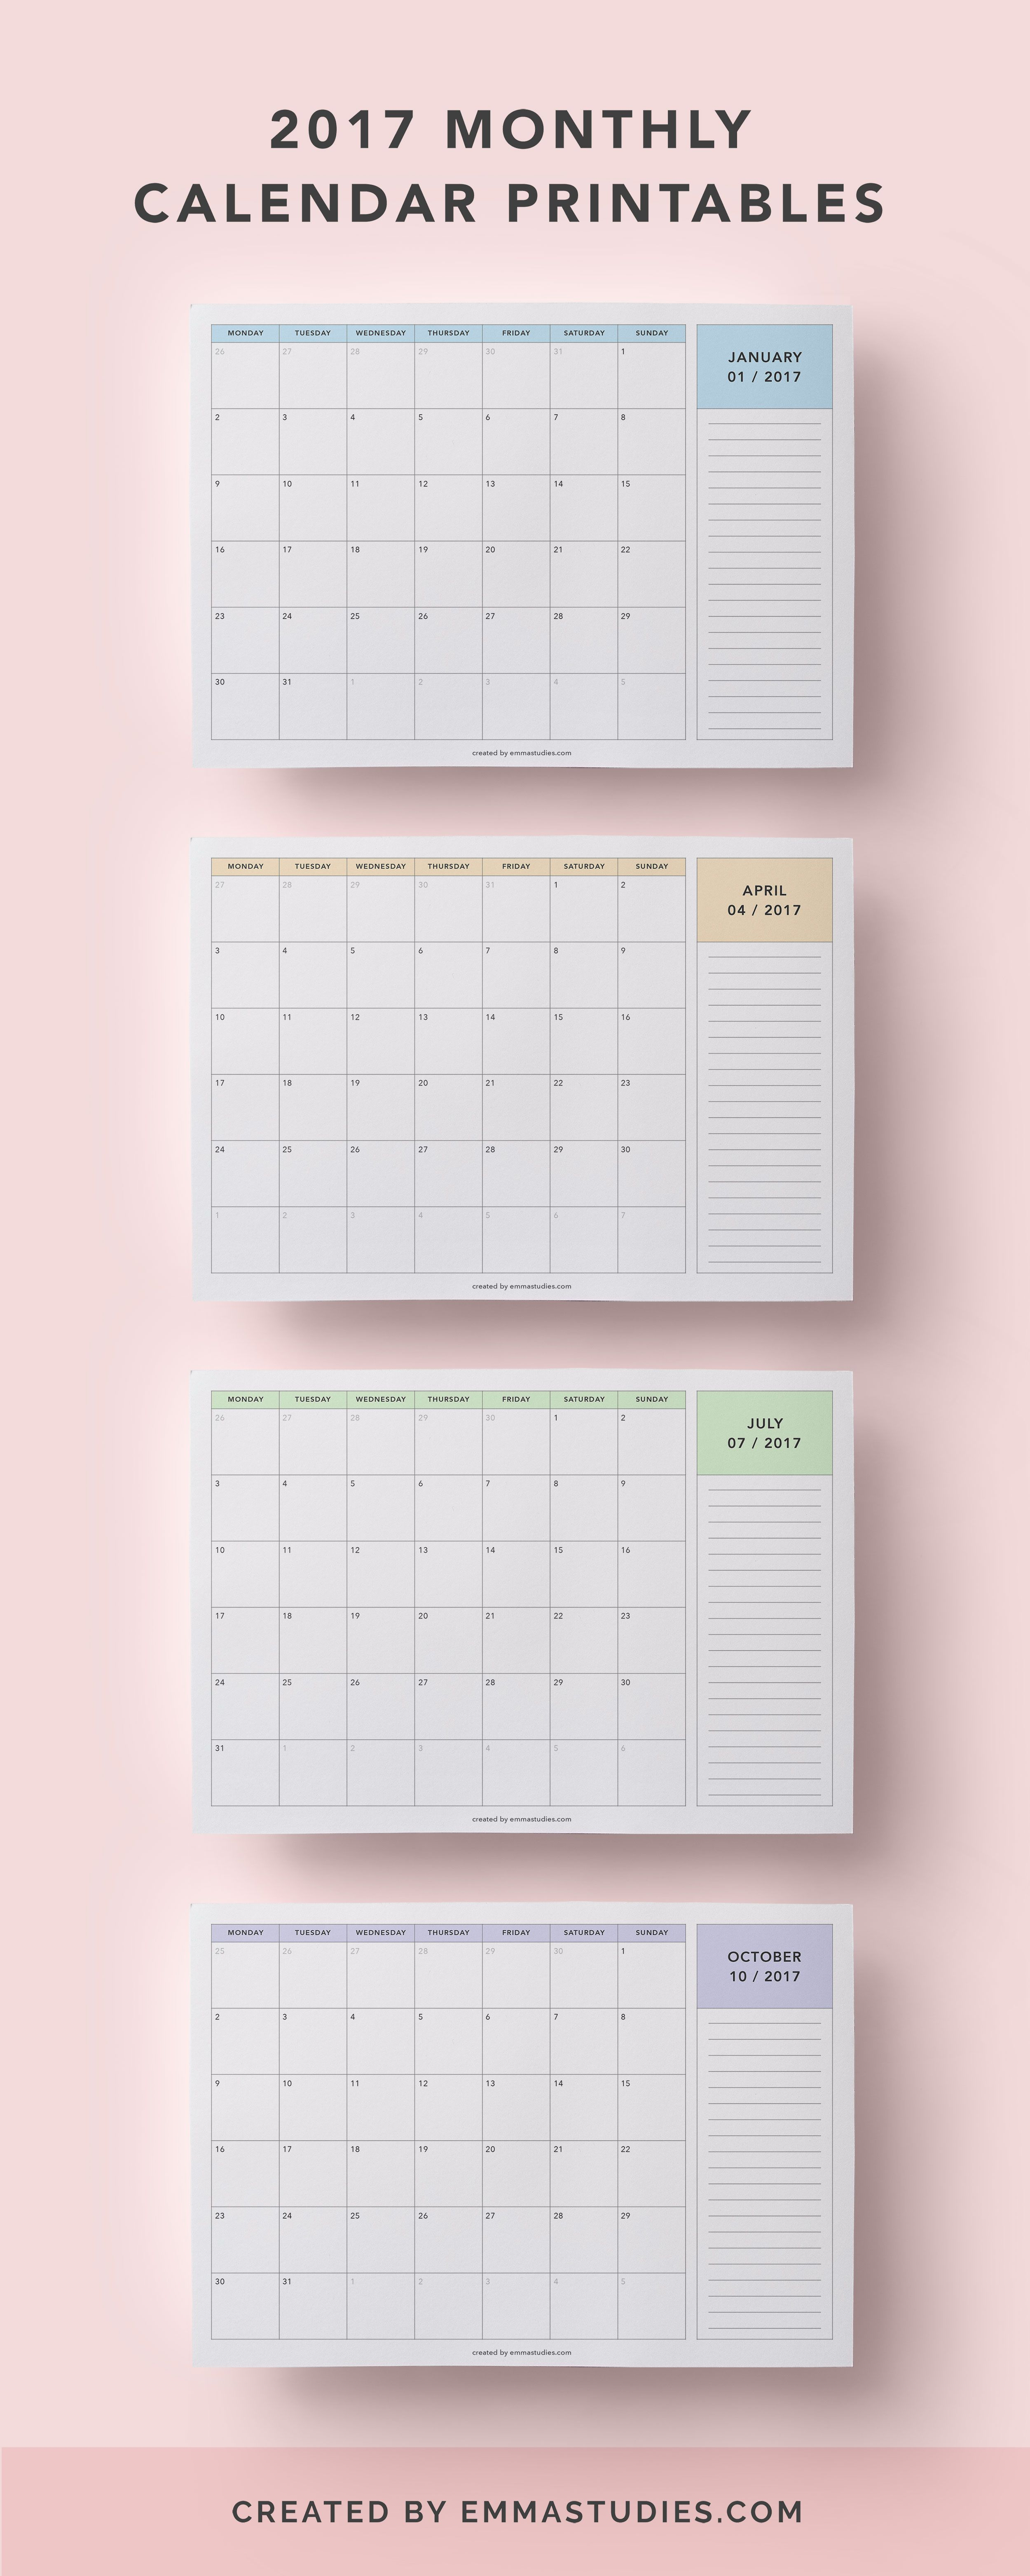 Monthly Calendar Printables Free To Download By